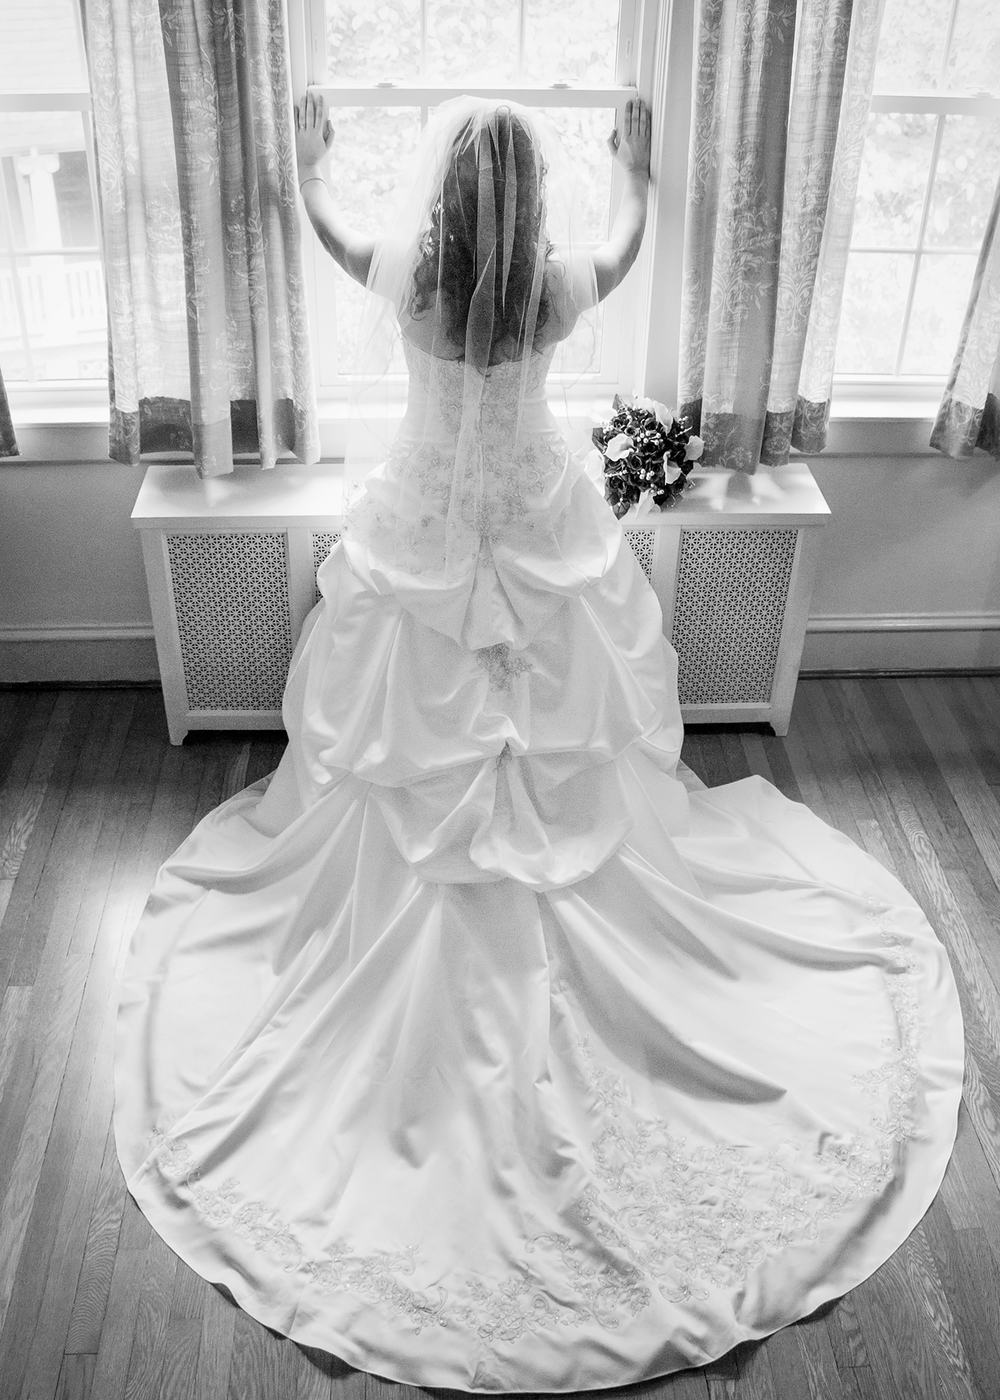 Alleghany Wedding Photography Bridal Pose